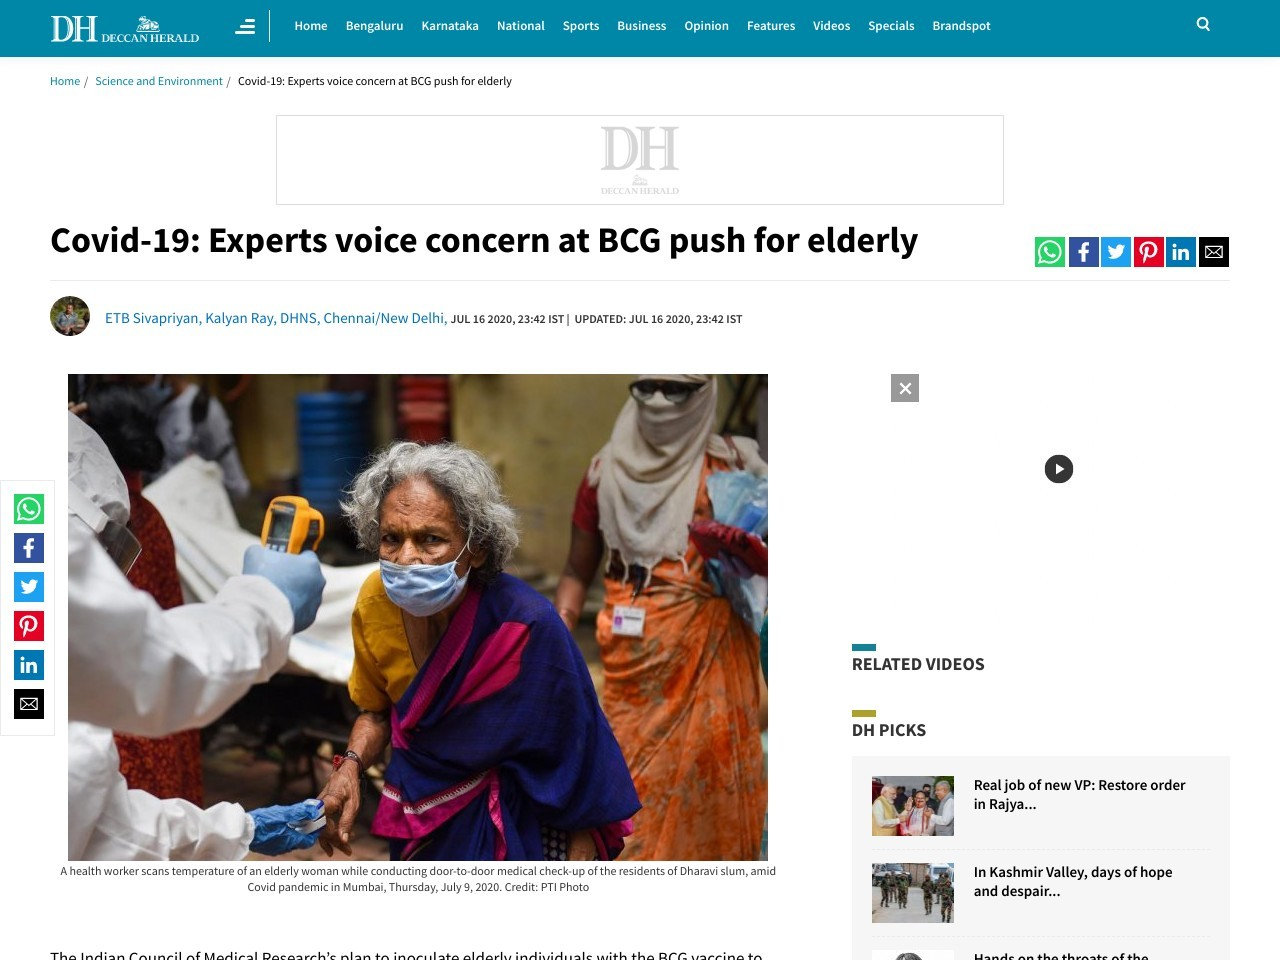 Covid-19: Experts voice concern at BCG push for elderly